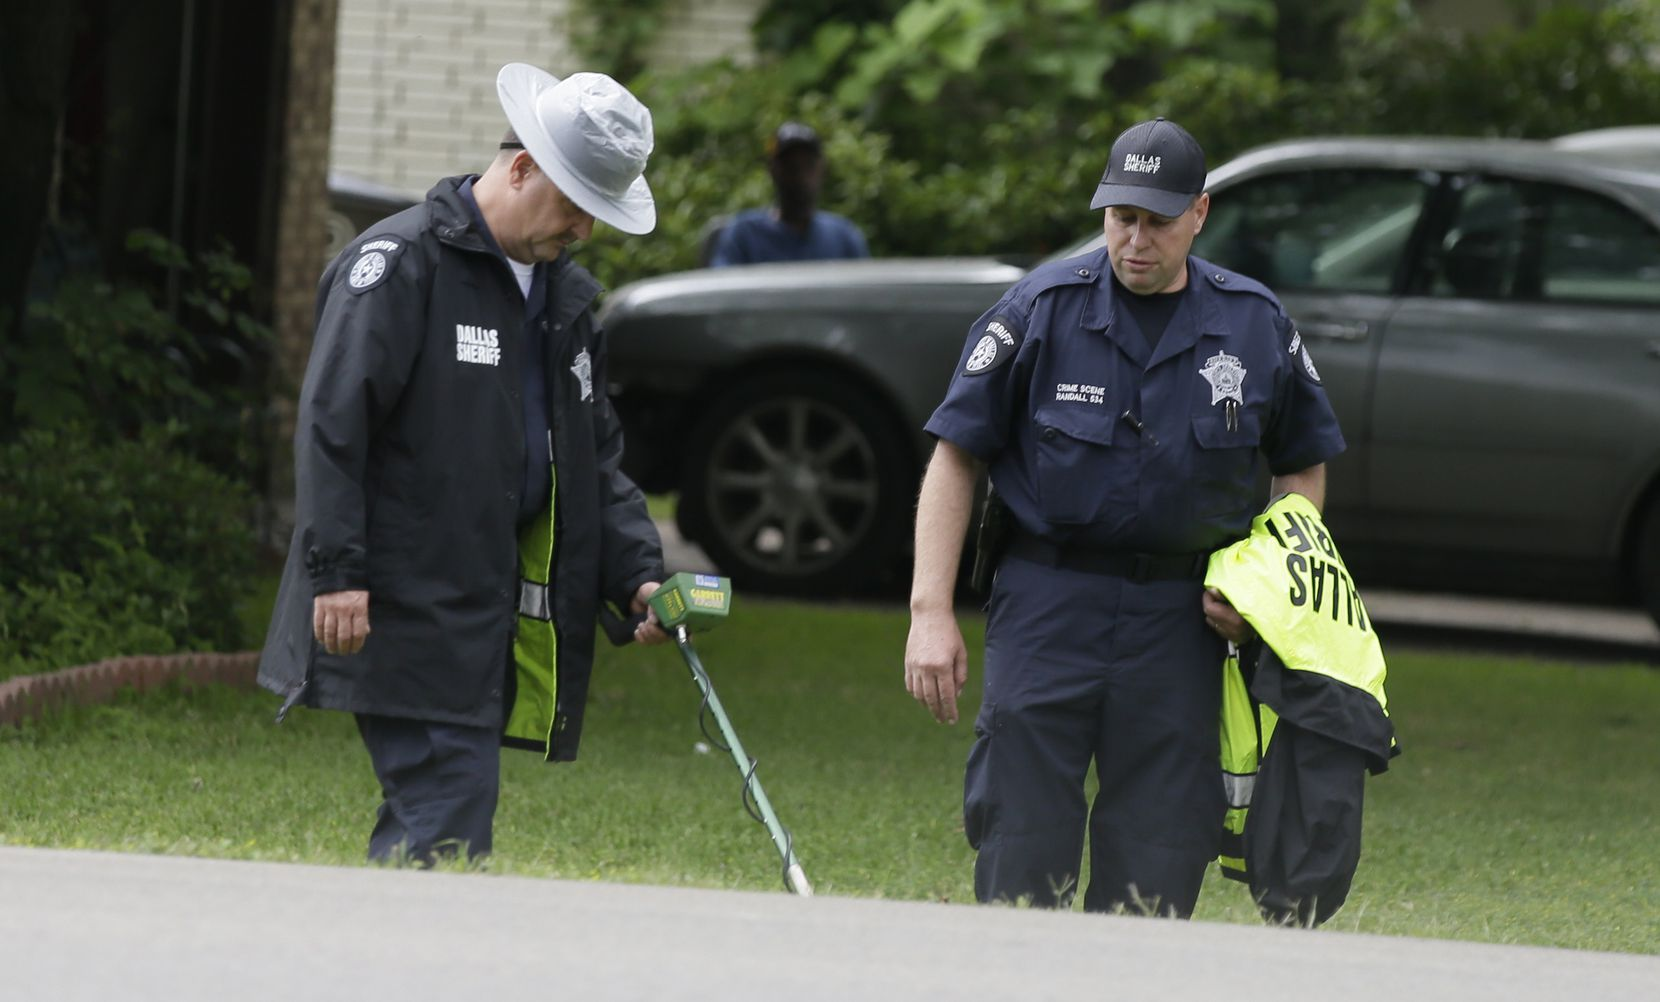 Dallas County Sheriff crime scene investigators use a metal detector at the intersection near where Jordan Edwards was killed by a police officer in Balch Springs, Texas, Wednesday, May 3, 2017.